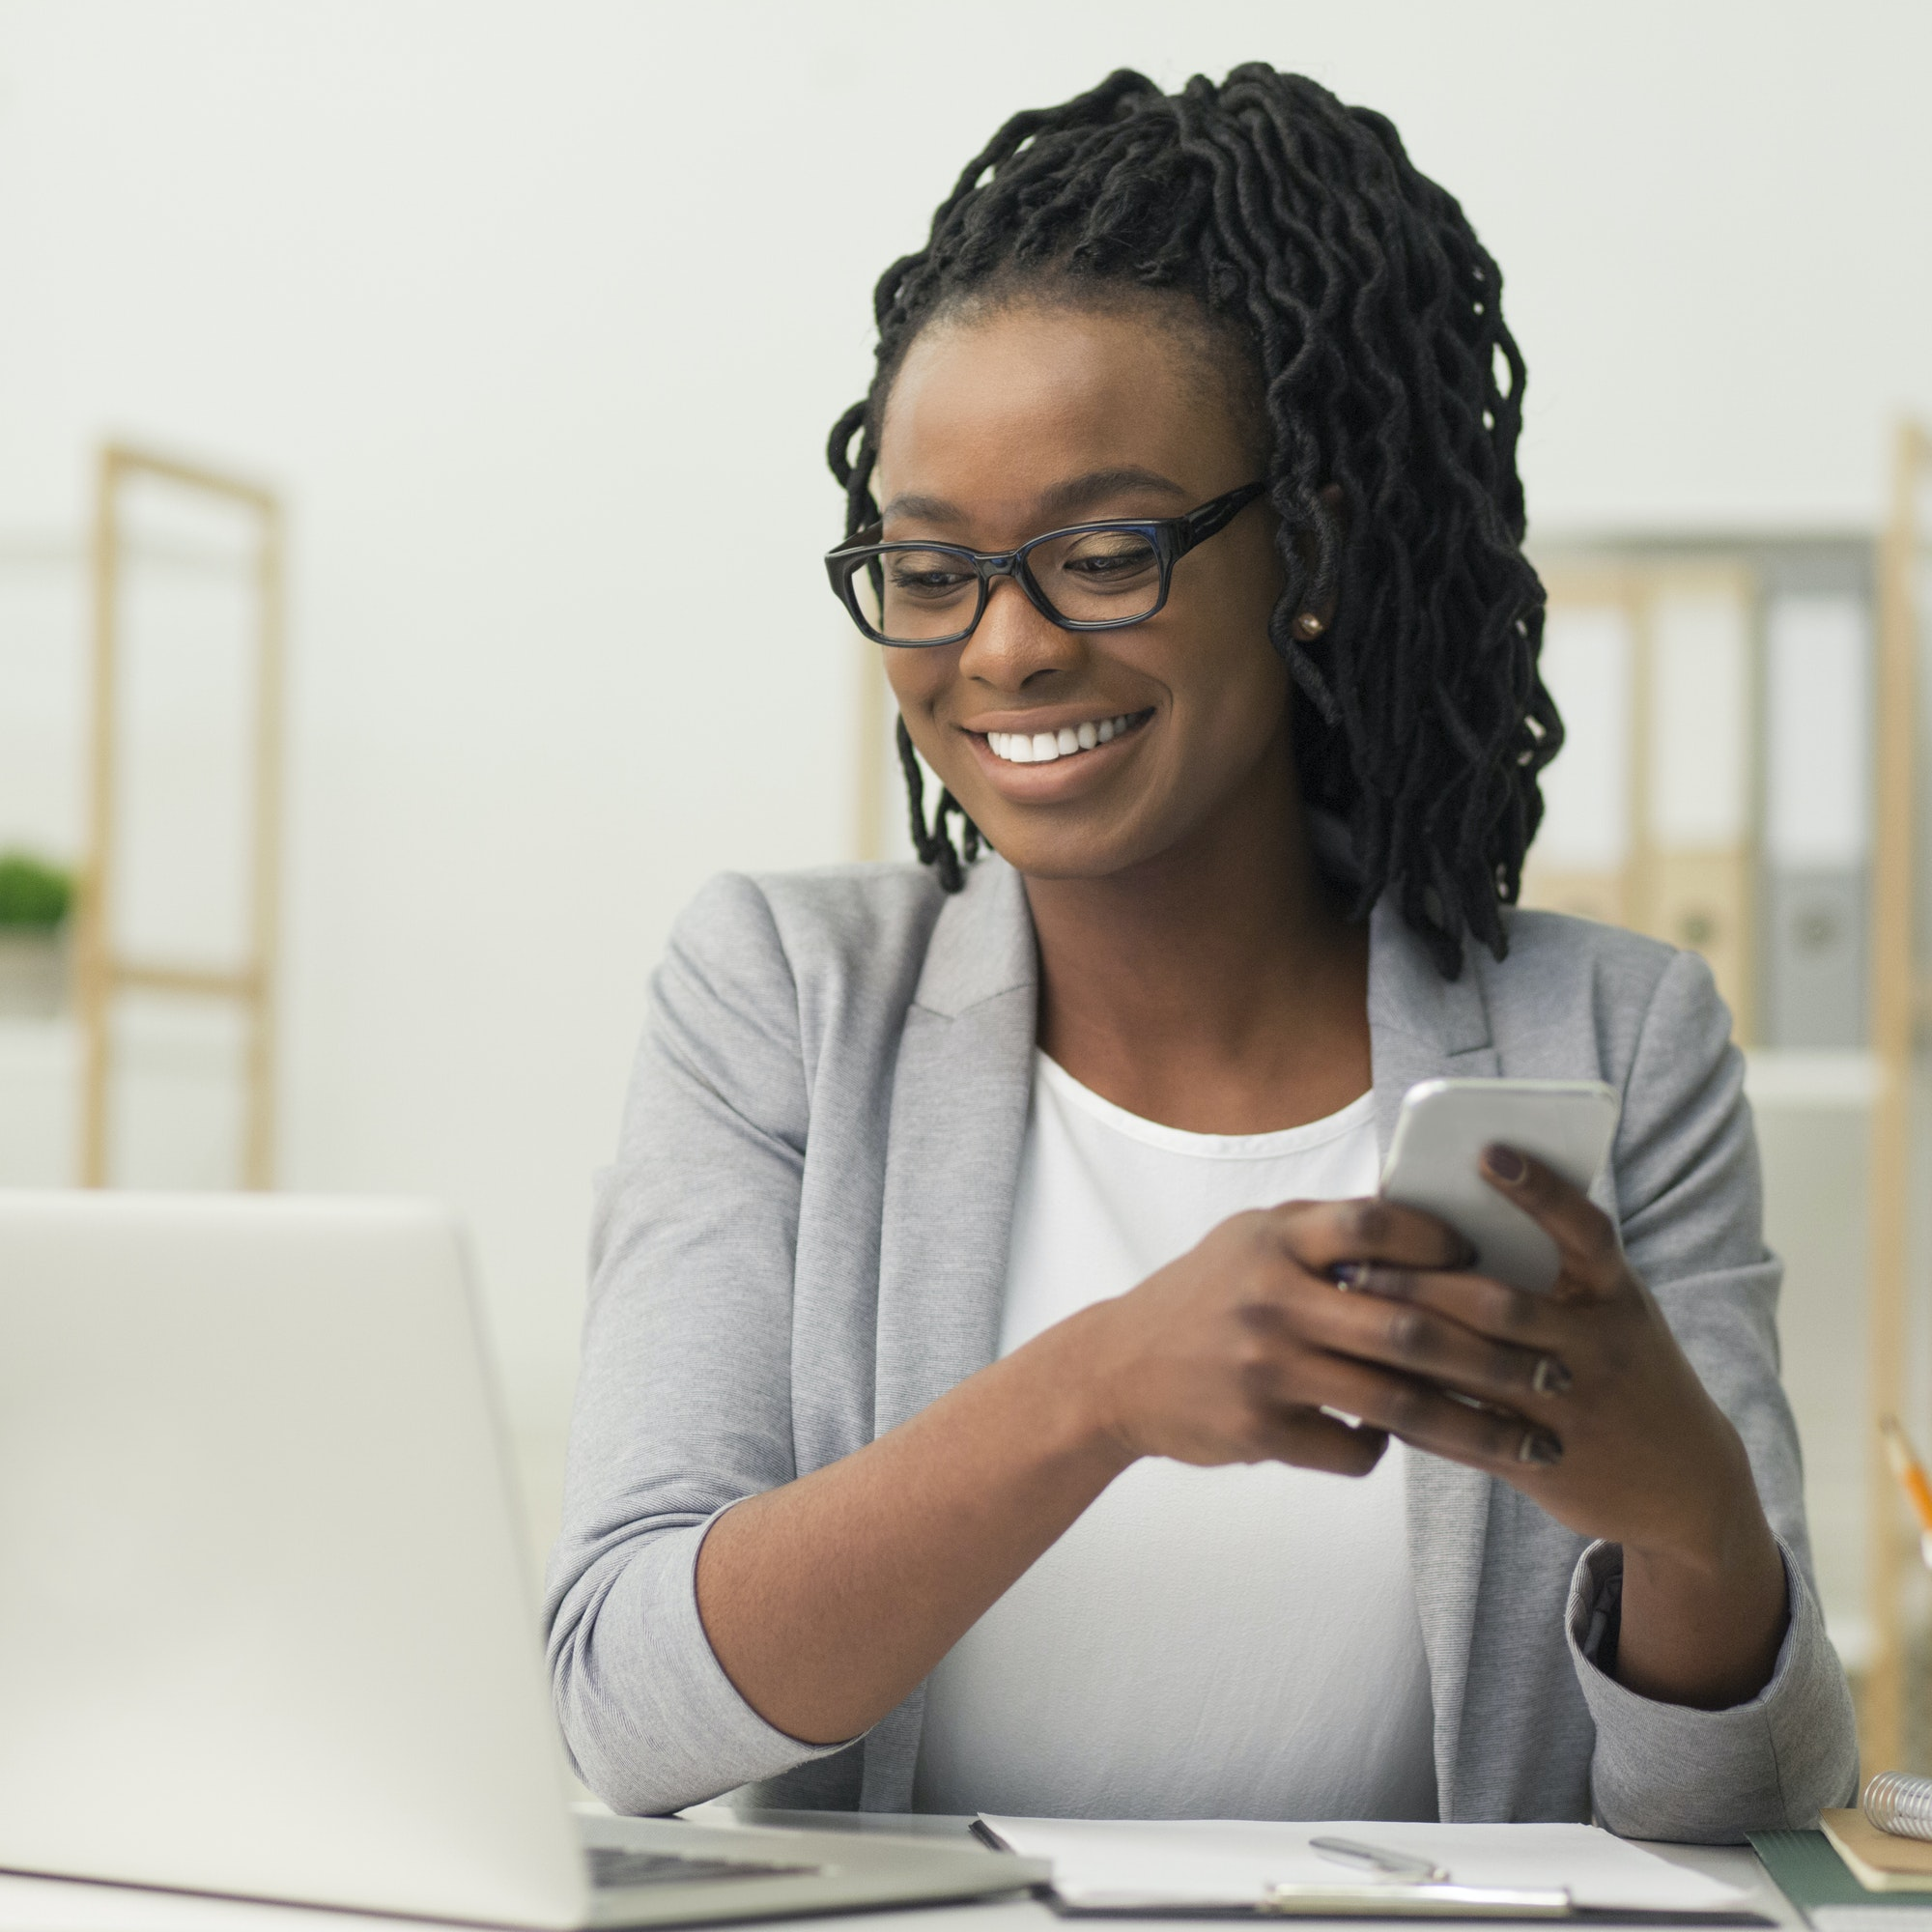 Afro Businesswoman Texting Via Smartphone Sitting In Modern Office